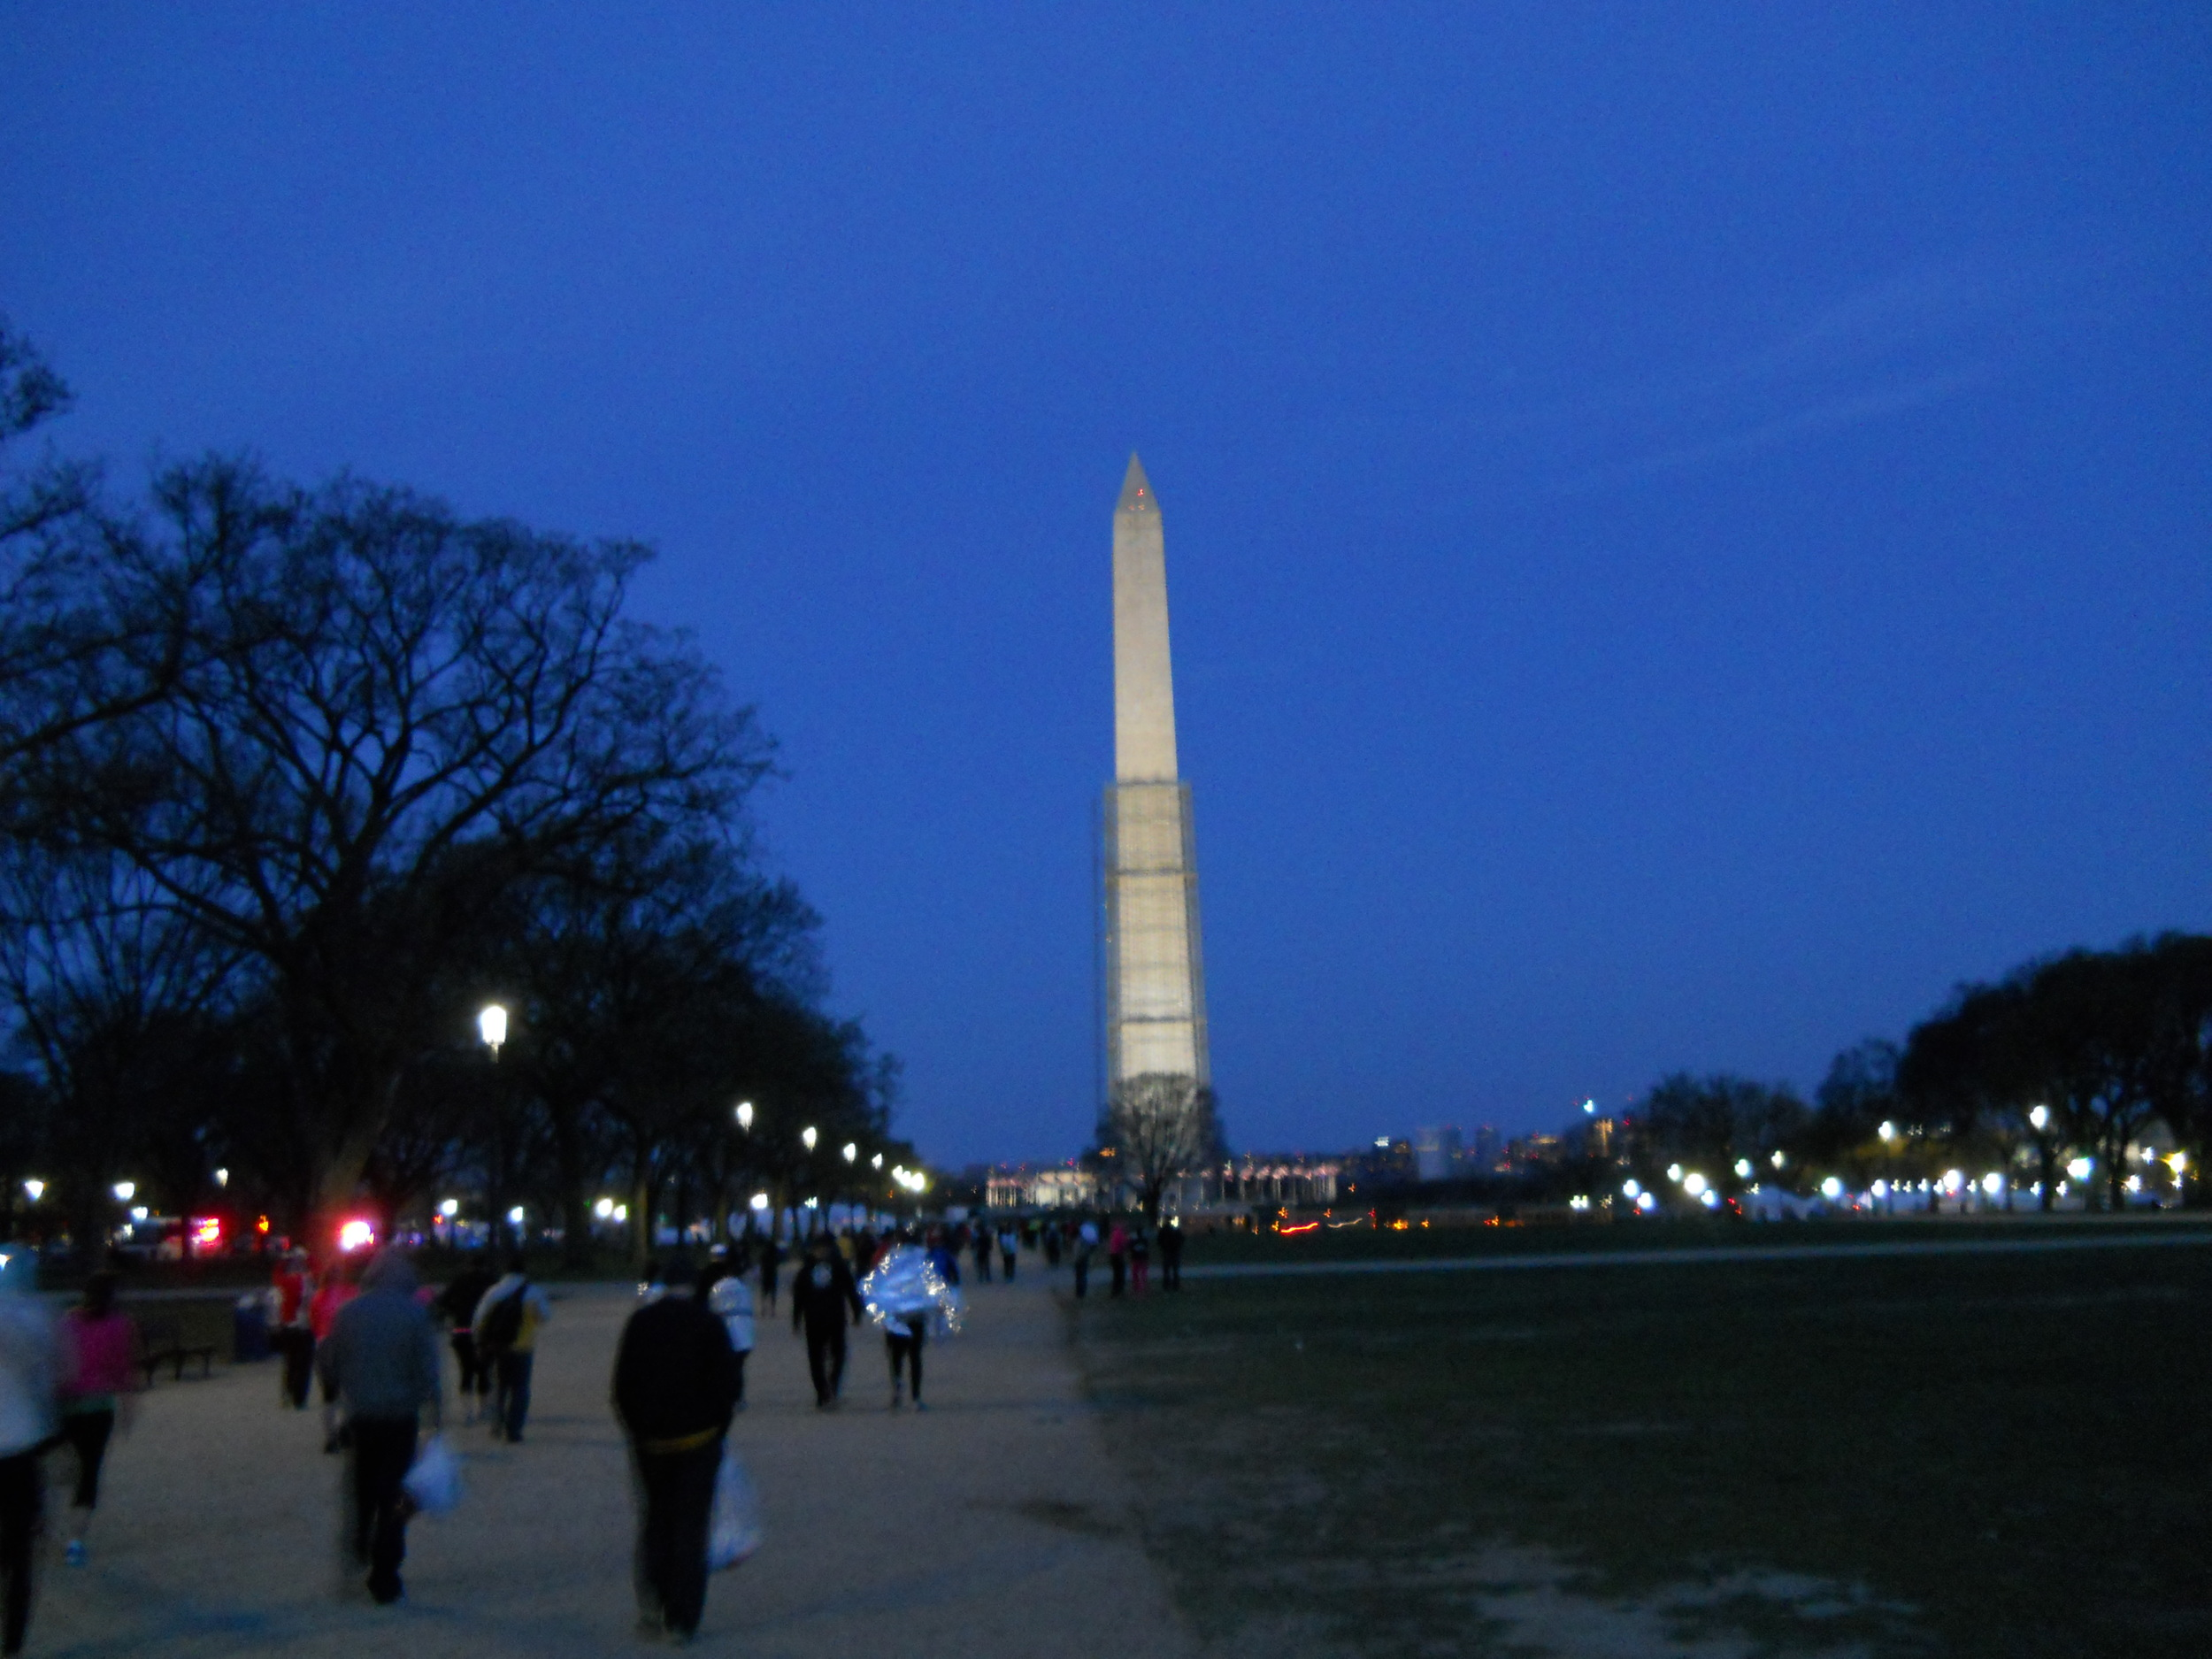 Awesome view of the Washington Monument as we approached race start.